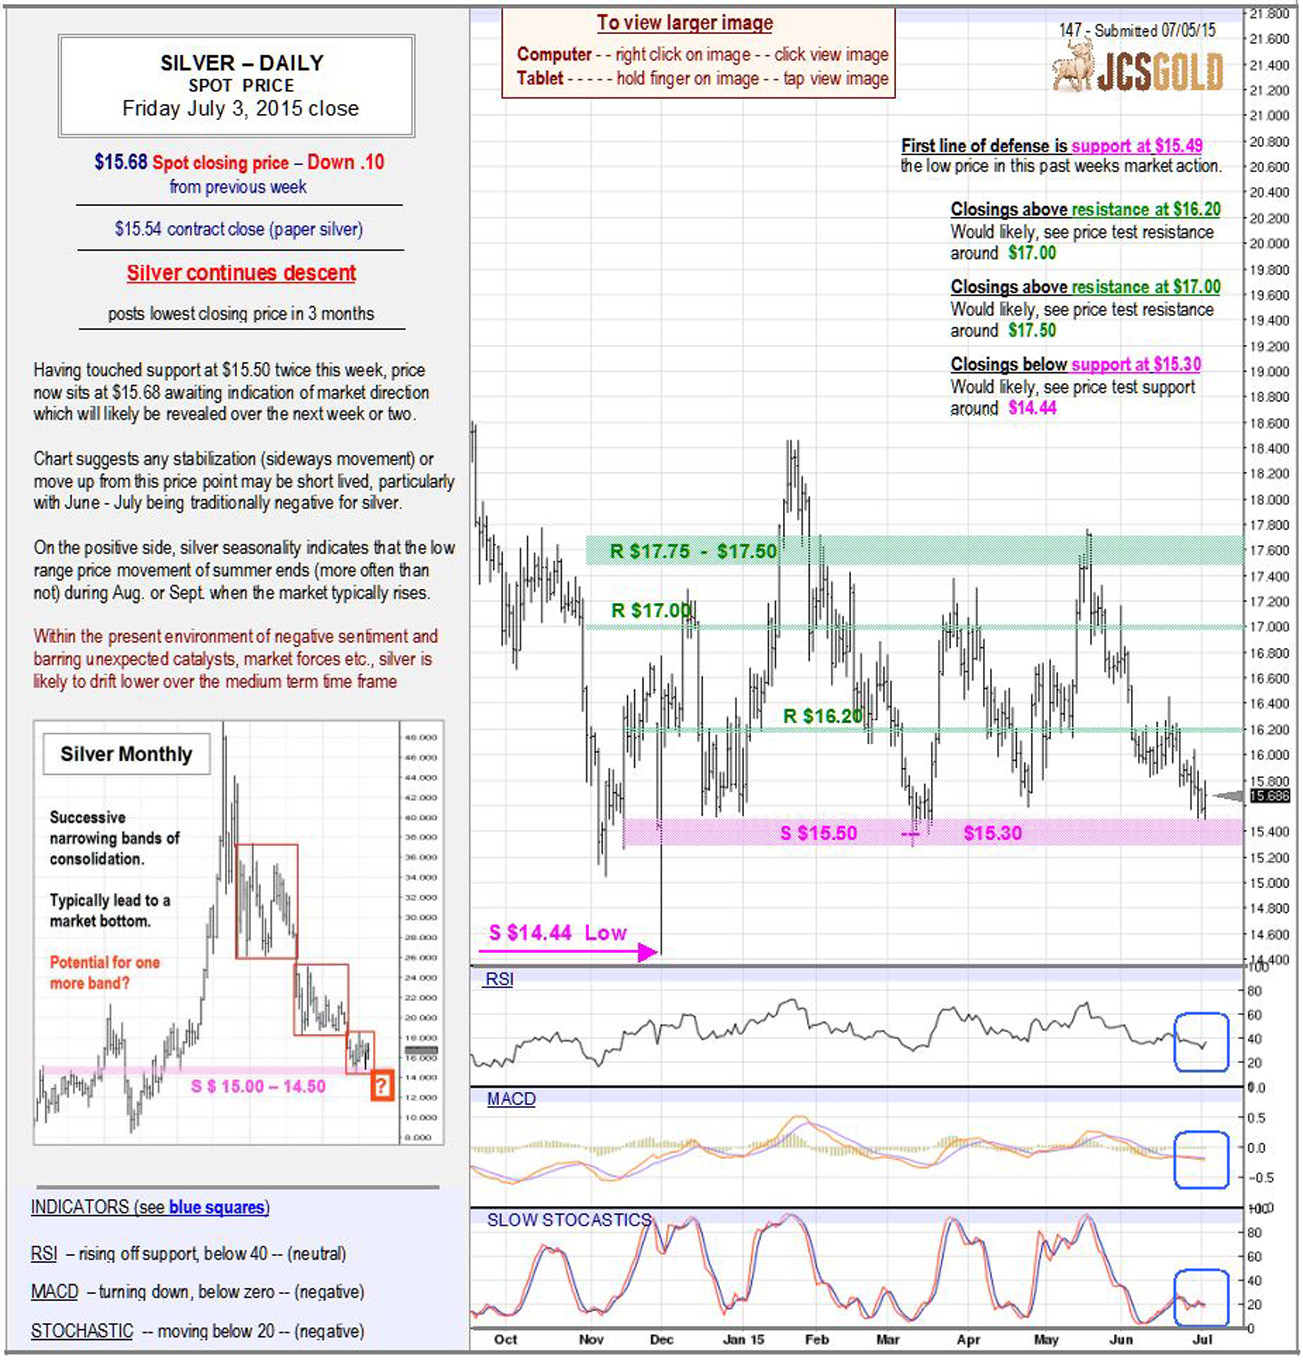 July 3, 2015 chart & commentary